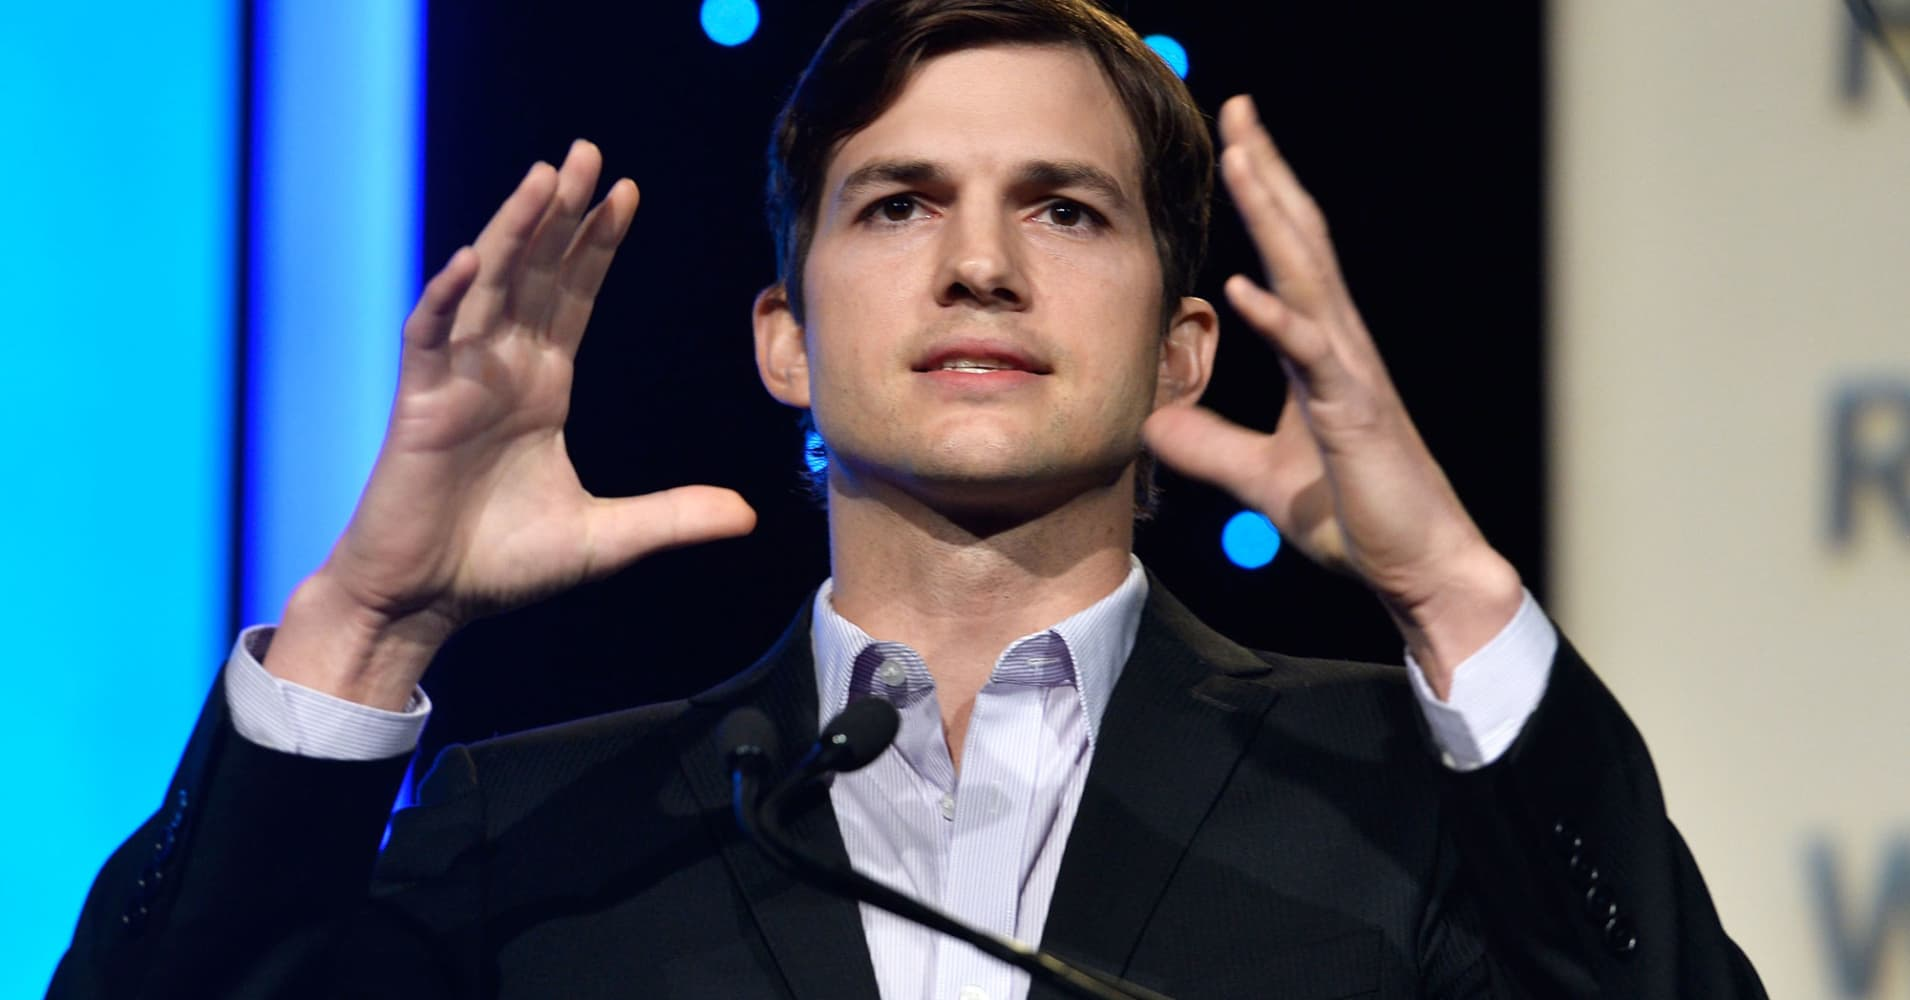 Ashton Kutcher: Technology will even take jobs from actors - 'It's happening right now'